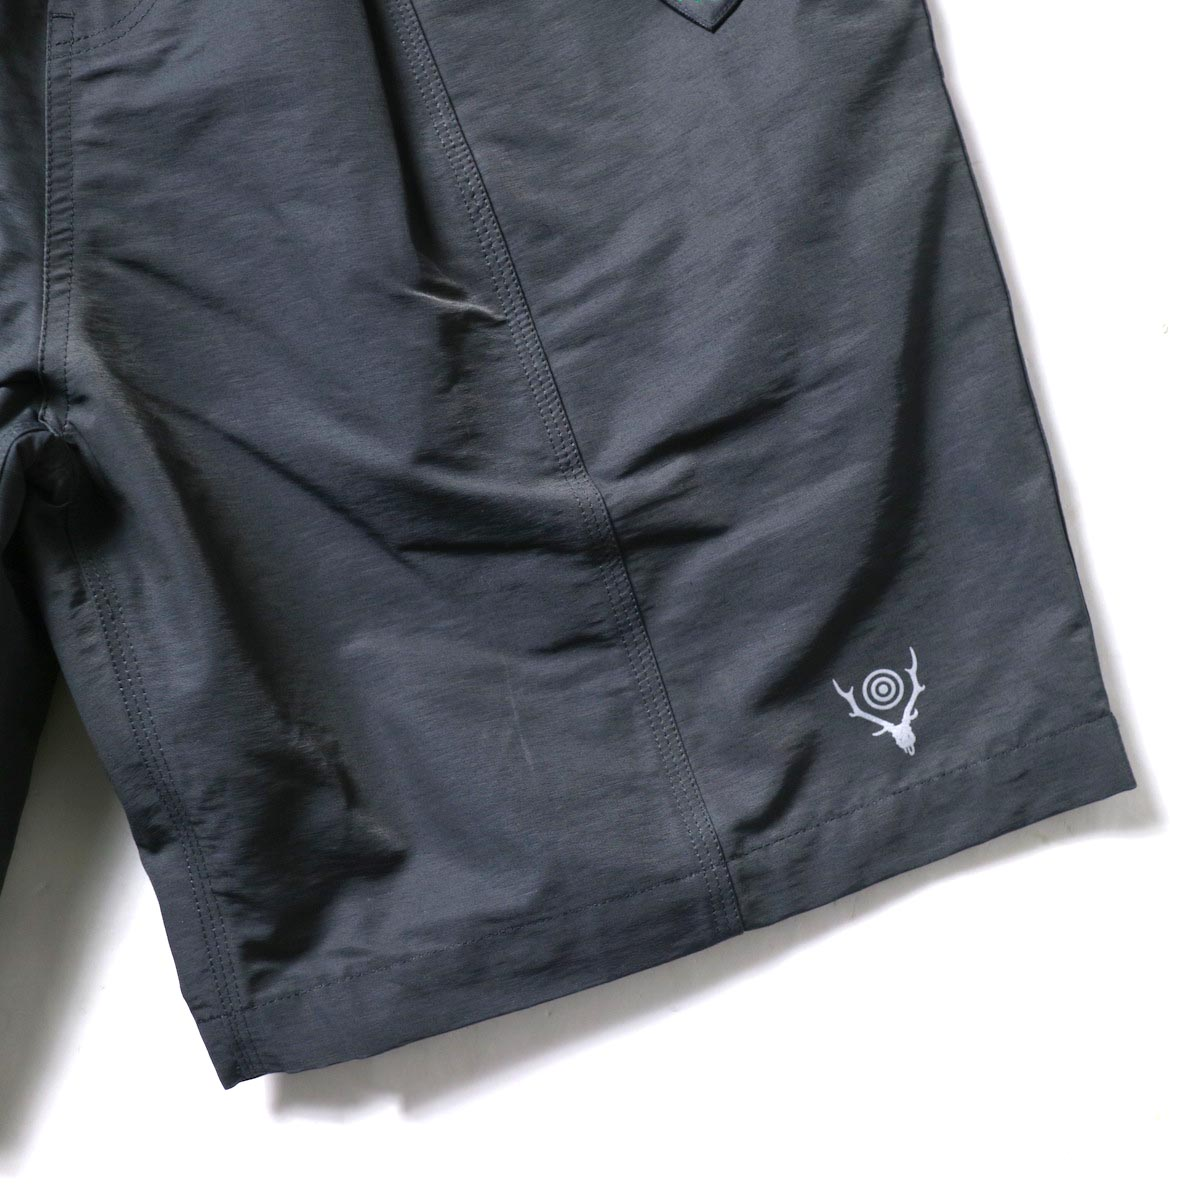 South2 West8 / BELTED C.S. SHORT - C/N GROSGRAIN (Charcoal)裾、ロゴ